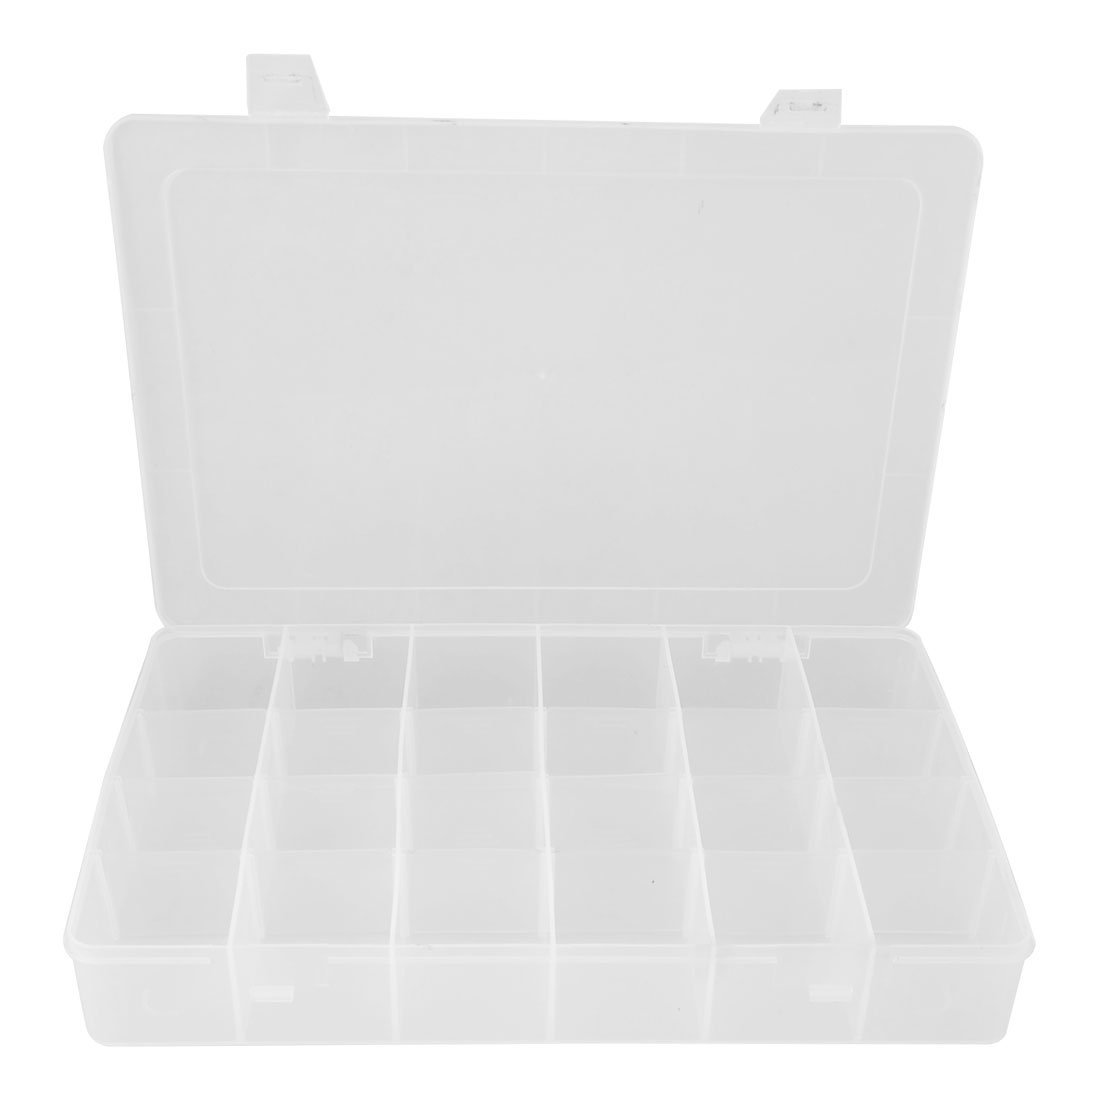 Amazon.com  uxcell Clear White Plastic 24 Compartments Fishing Fish Lure Storage Box Case  Fishing Tackle Boxes  Sports u0026 Outdoors  sc 1 st  Amazon.com & Amazon.com : uxcell Clear White Plastic 24 Compartments Fishing ... Aboutintivar.Com